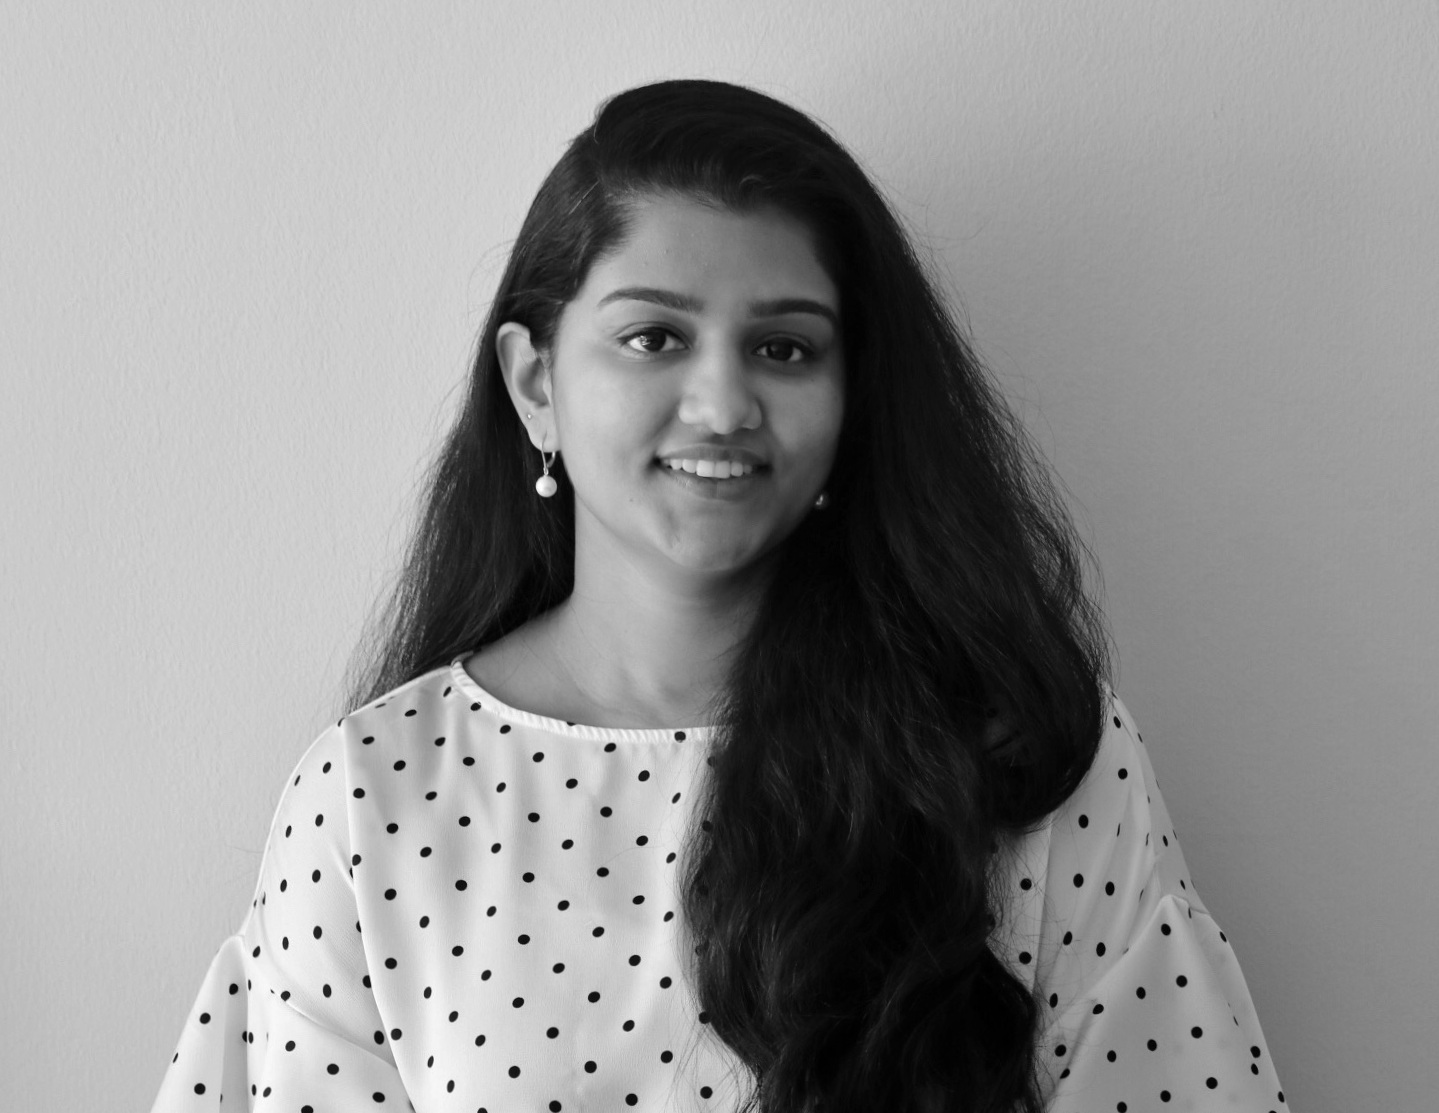 Sri Kozhissery, Spring 2019 Data & Product Support Intern   Sri is an engineer, originally from India, and holds a Master of Public Administration (MPA) degree from School of International and Public Affairs, Columbia University. With deep interest in working towards an equitable society through access to quality education for all, she transitioned to the education space from Technology Consulting through the Teach for India Fellowship. With previous experience leading STEM education initiatives in Corporate Social Responsibility for Tata Consultancy Services in India, she is an Education Pioneers Fellow and have worked in building an adaptive framework for schools using Personalized Learning for a project at the Center for Public Research and Leadership (CPRL), a consulting clinic at Columbia Law School. Also, she has worked in international development, previously, through an internship with United Nations Population Fund and by consulting for Peru's Ministry of Education on a research study for a pilot implementation.